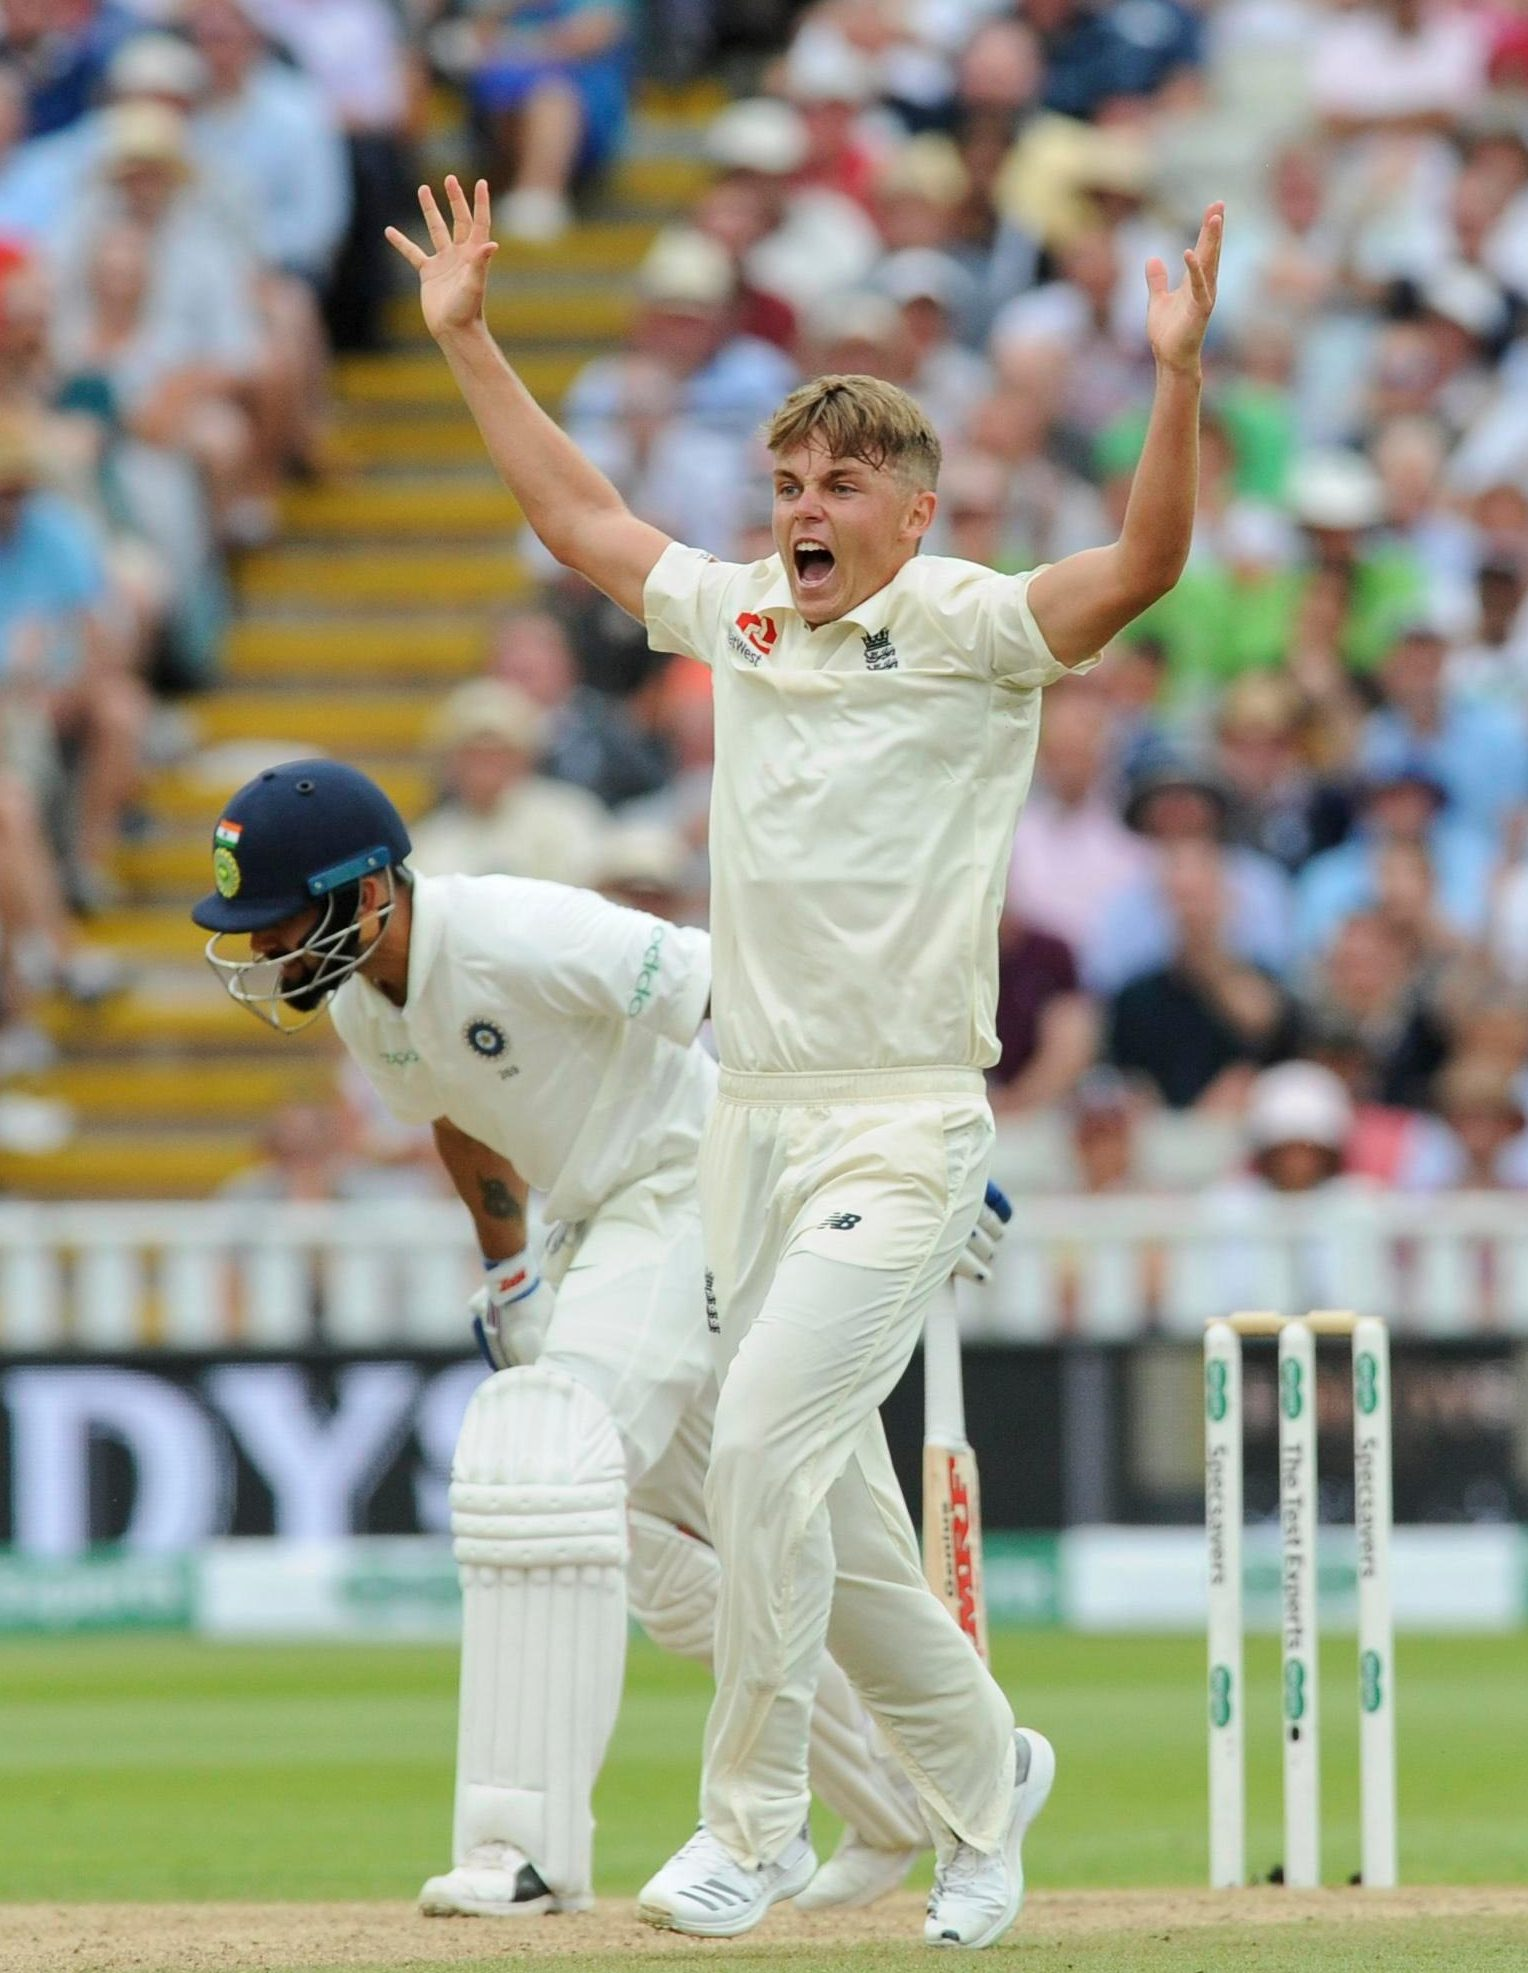 Sam Curran shone with bat and ball in the First Test for England - and needed to